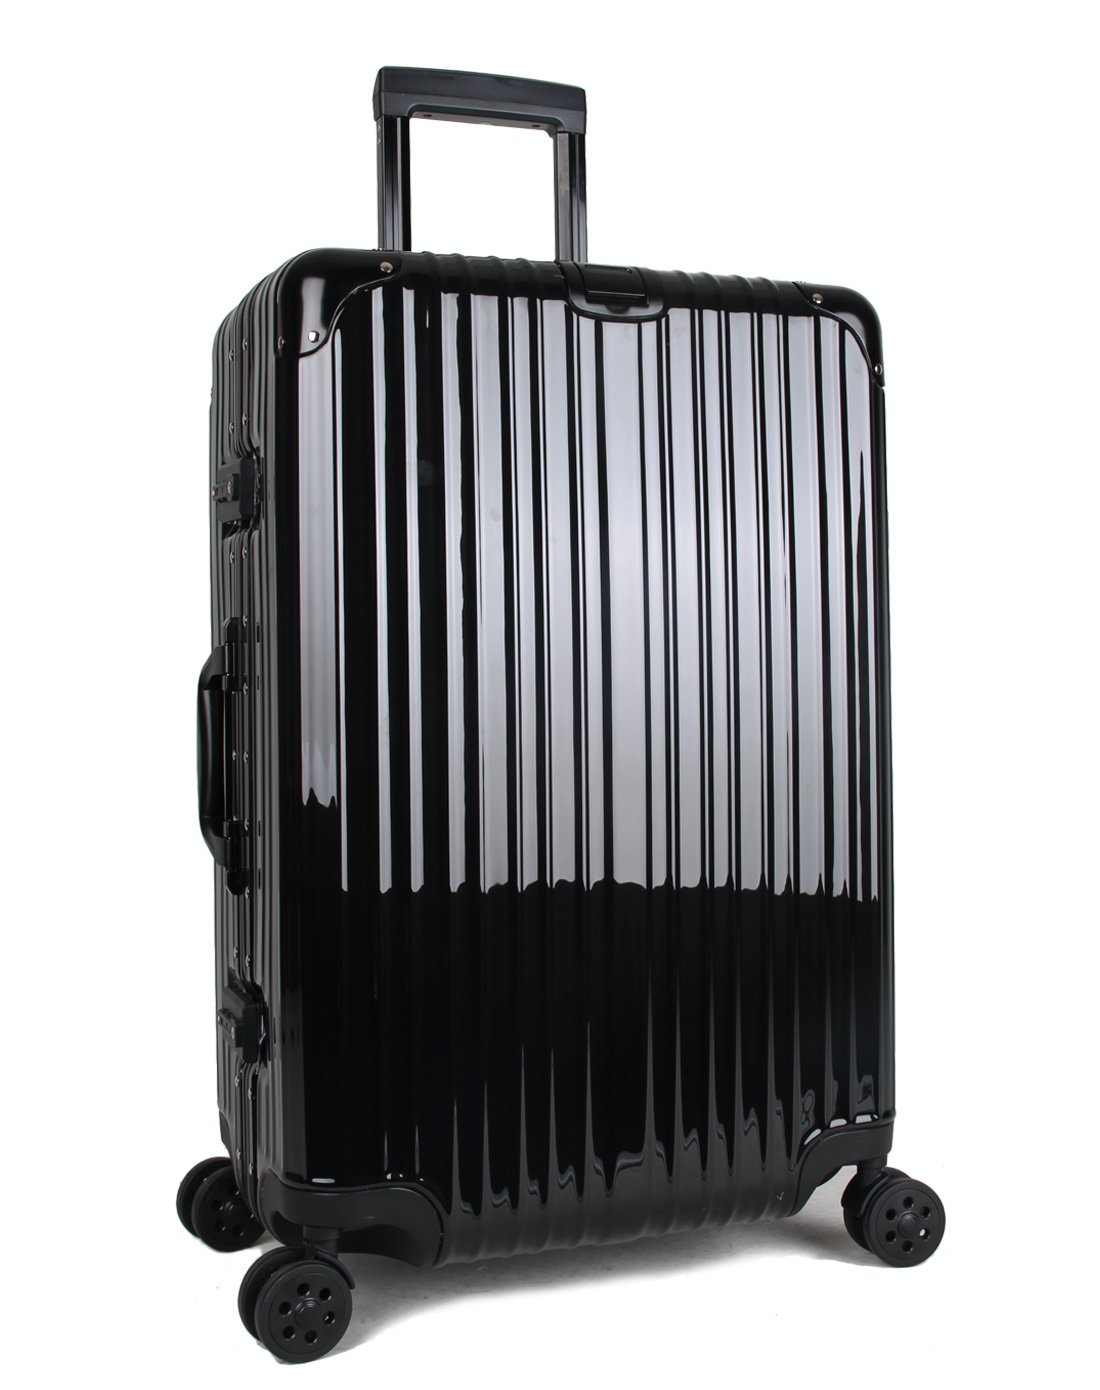 426e63d00583 Newest Trolley Luggage Lightweight Business Travel Carry on TSA Lock  Hardshell Suitcase ABS+PC Aluminum Frame (Black, 20